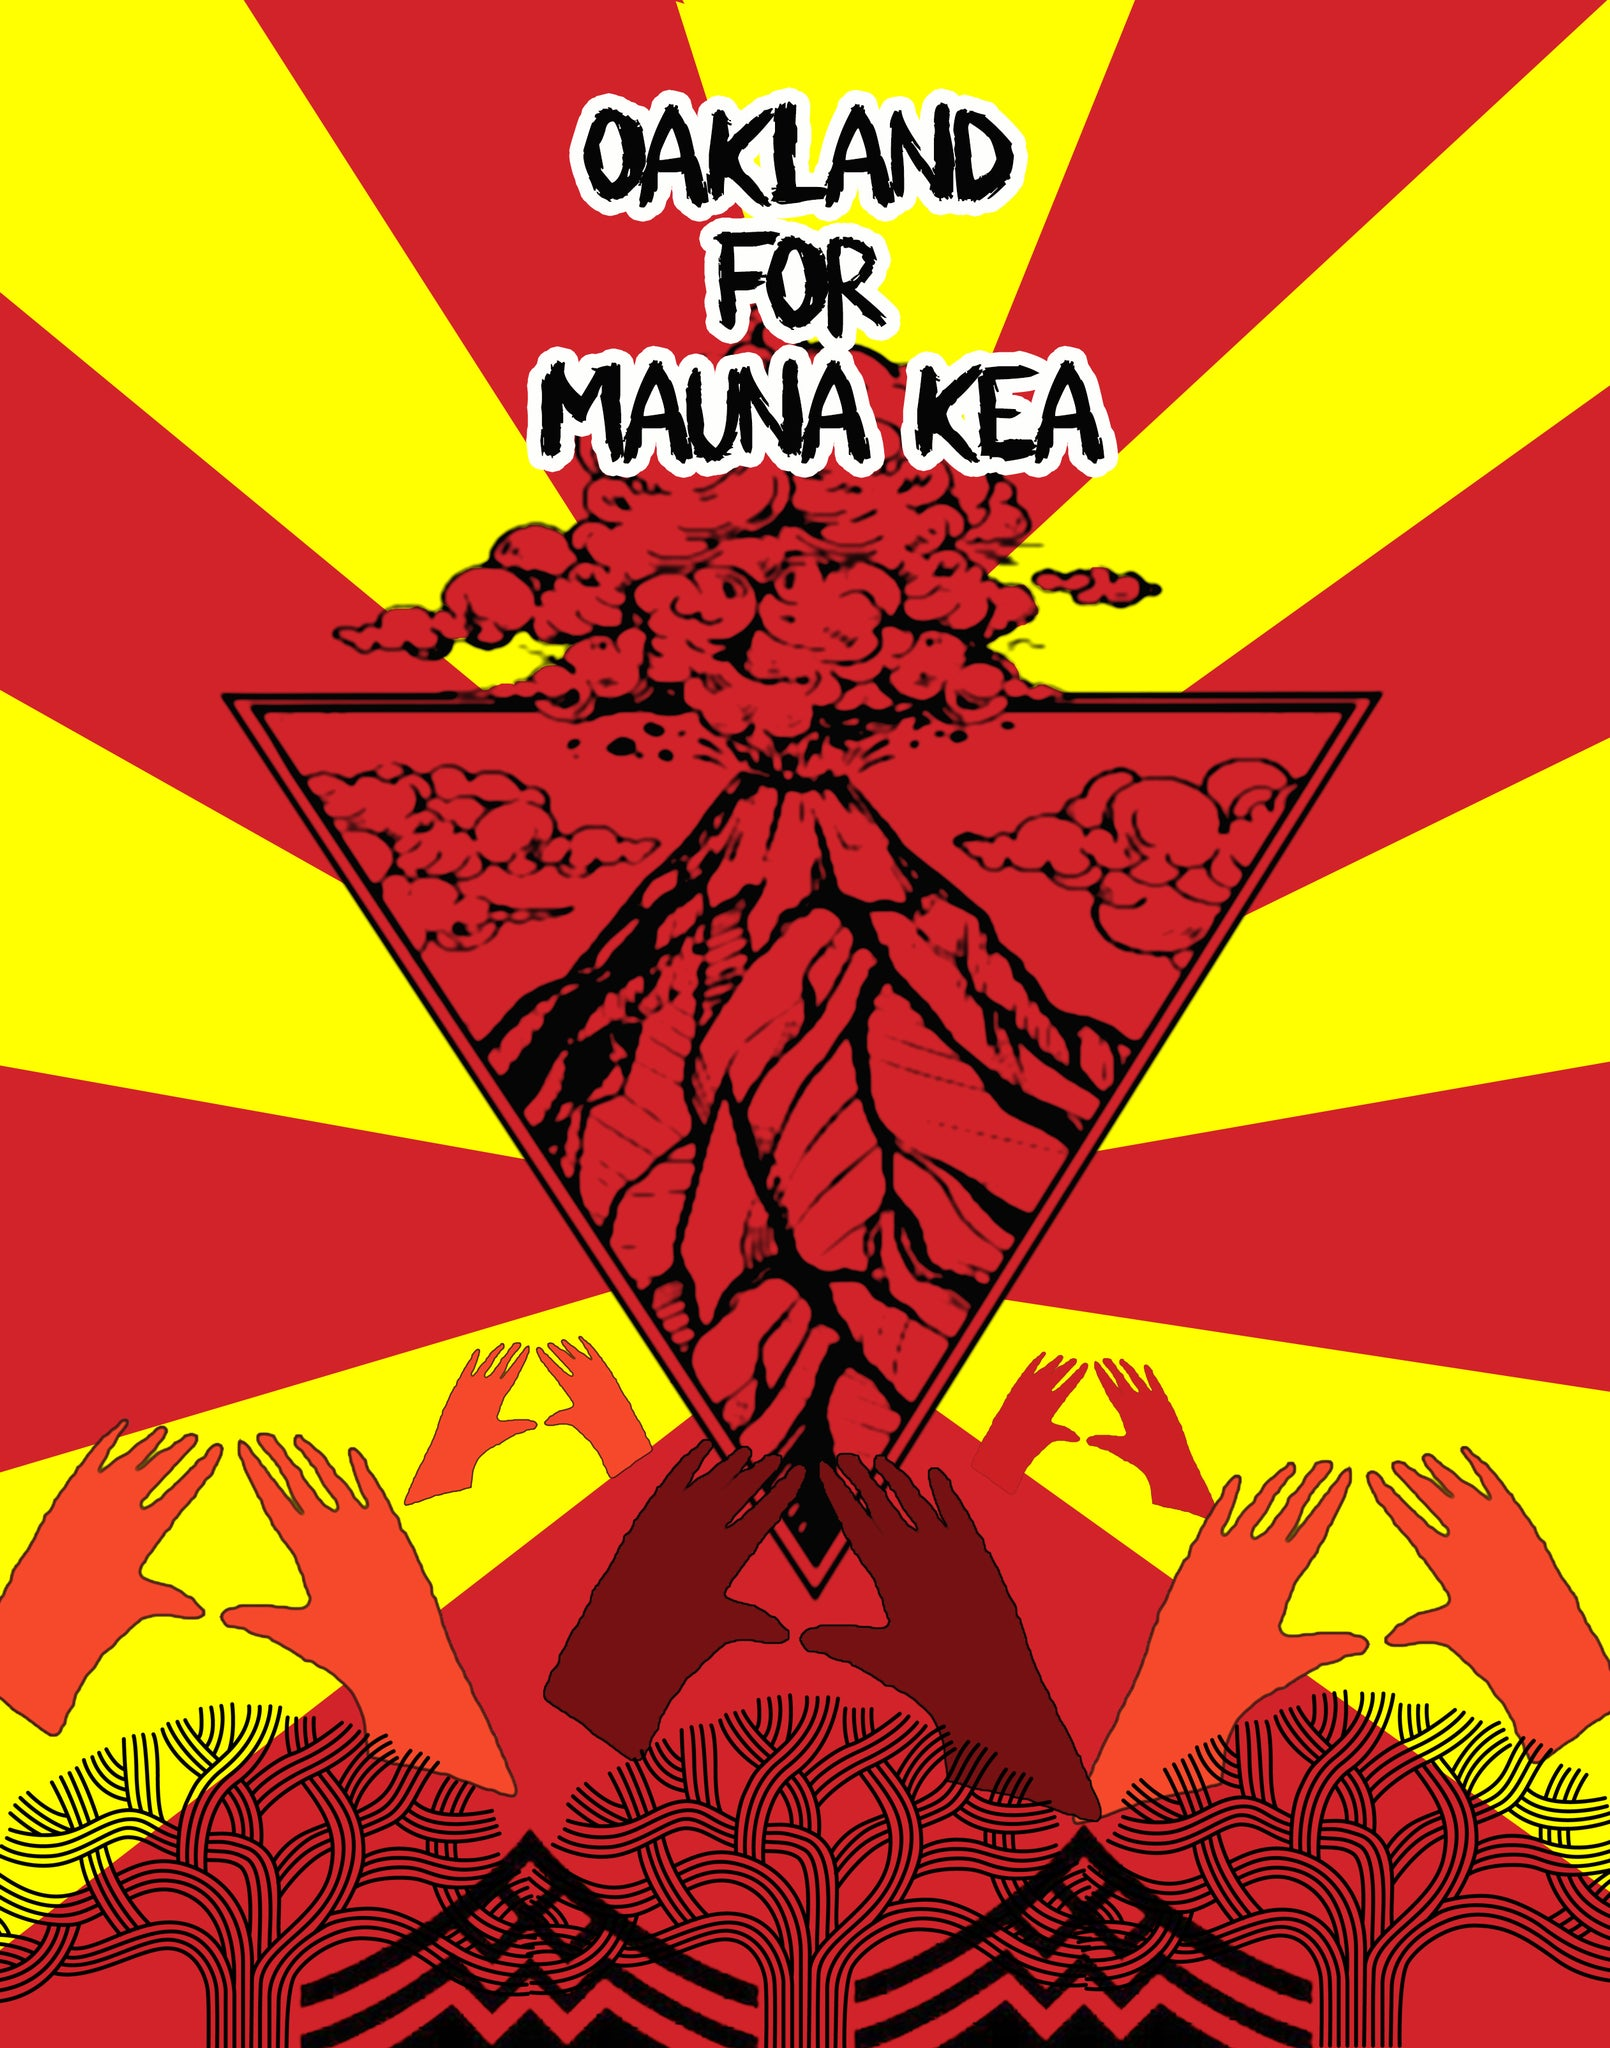 Oakland for Mauna Kea Poster + Free Heat Come DL by Audiopharmacy